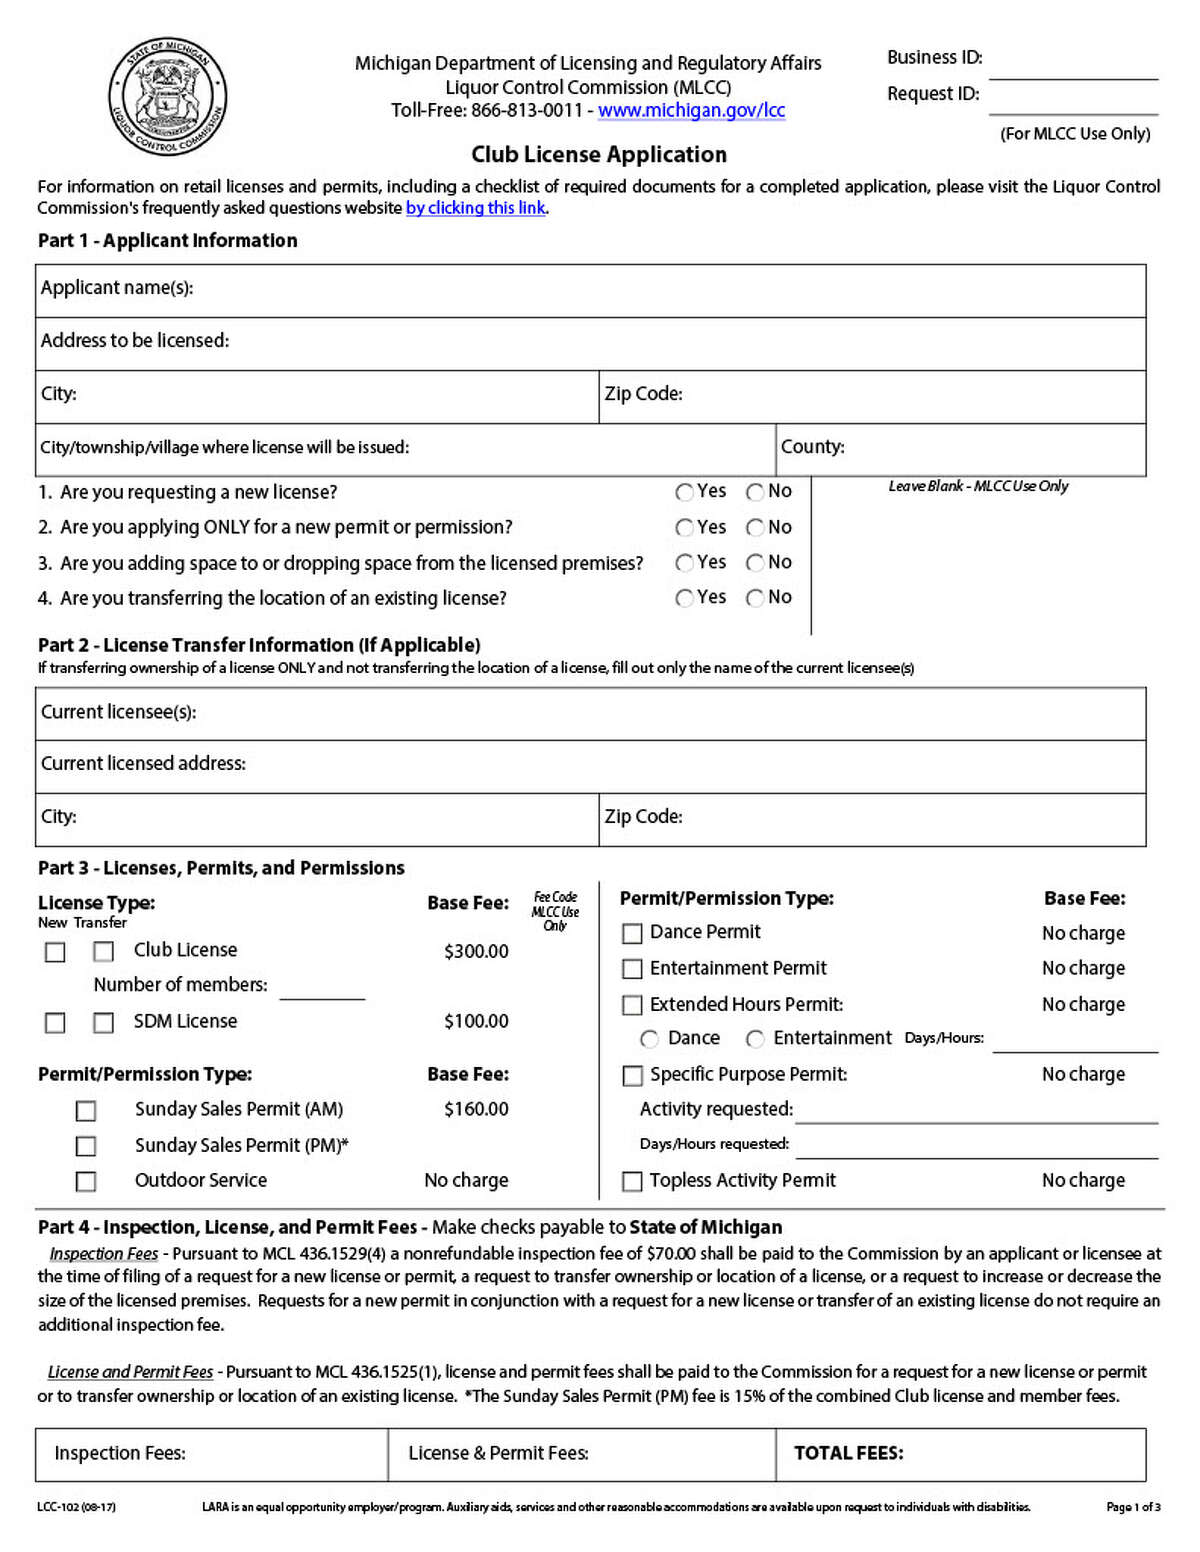 Paperwork filed by Kari Warren Holdings, LLC to transfer ownership of a liquor license, also included requests for other permits.